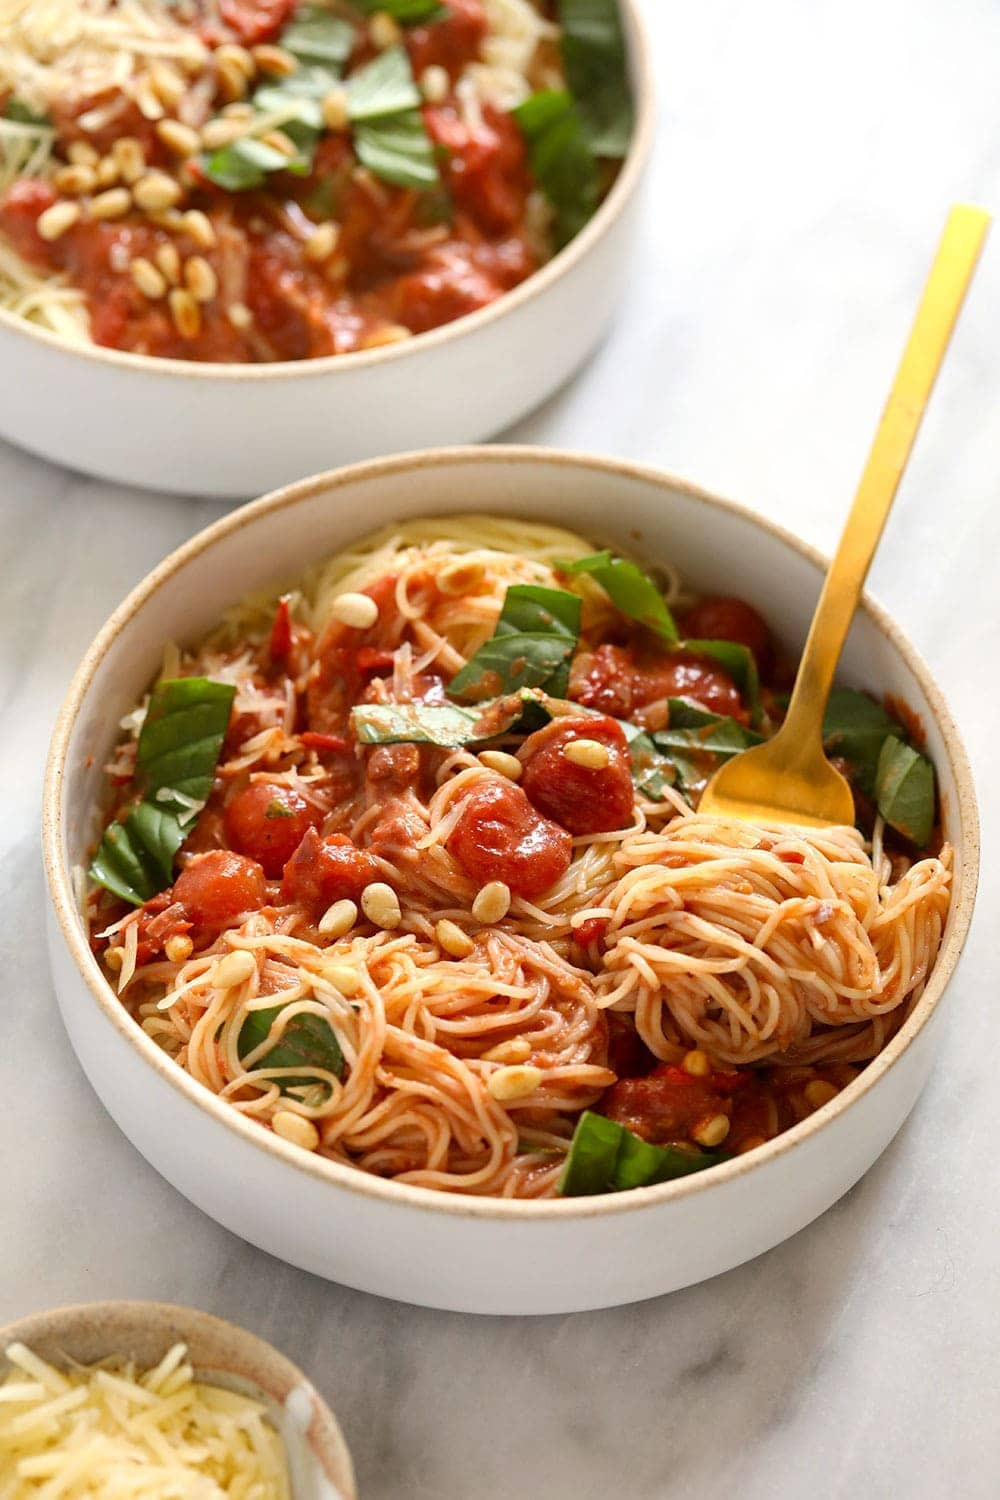 Two bowls of garden summer pasta with fresh basil on top.